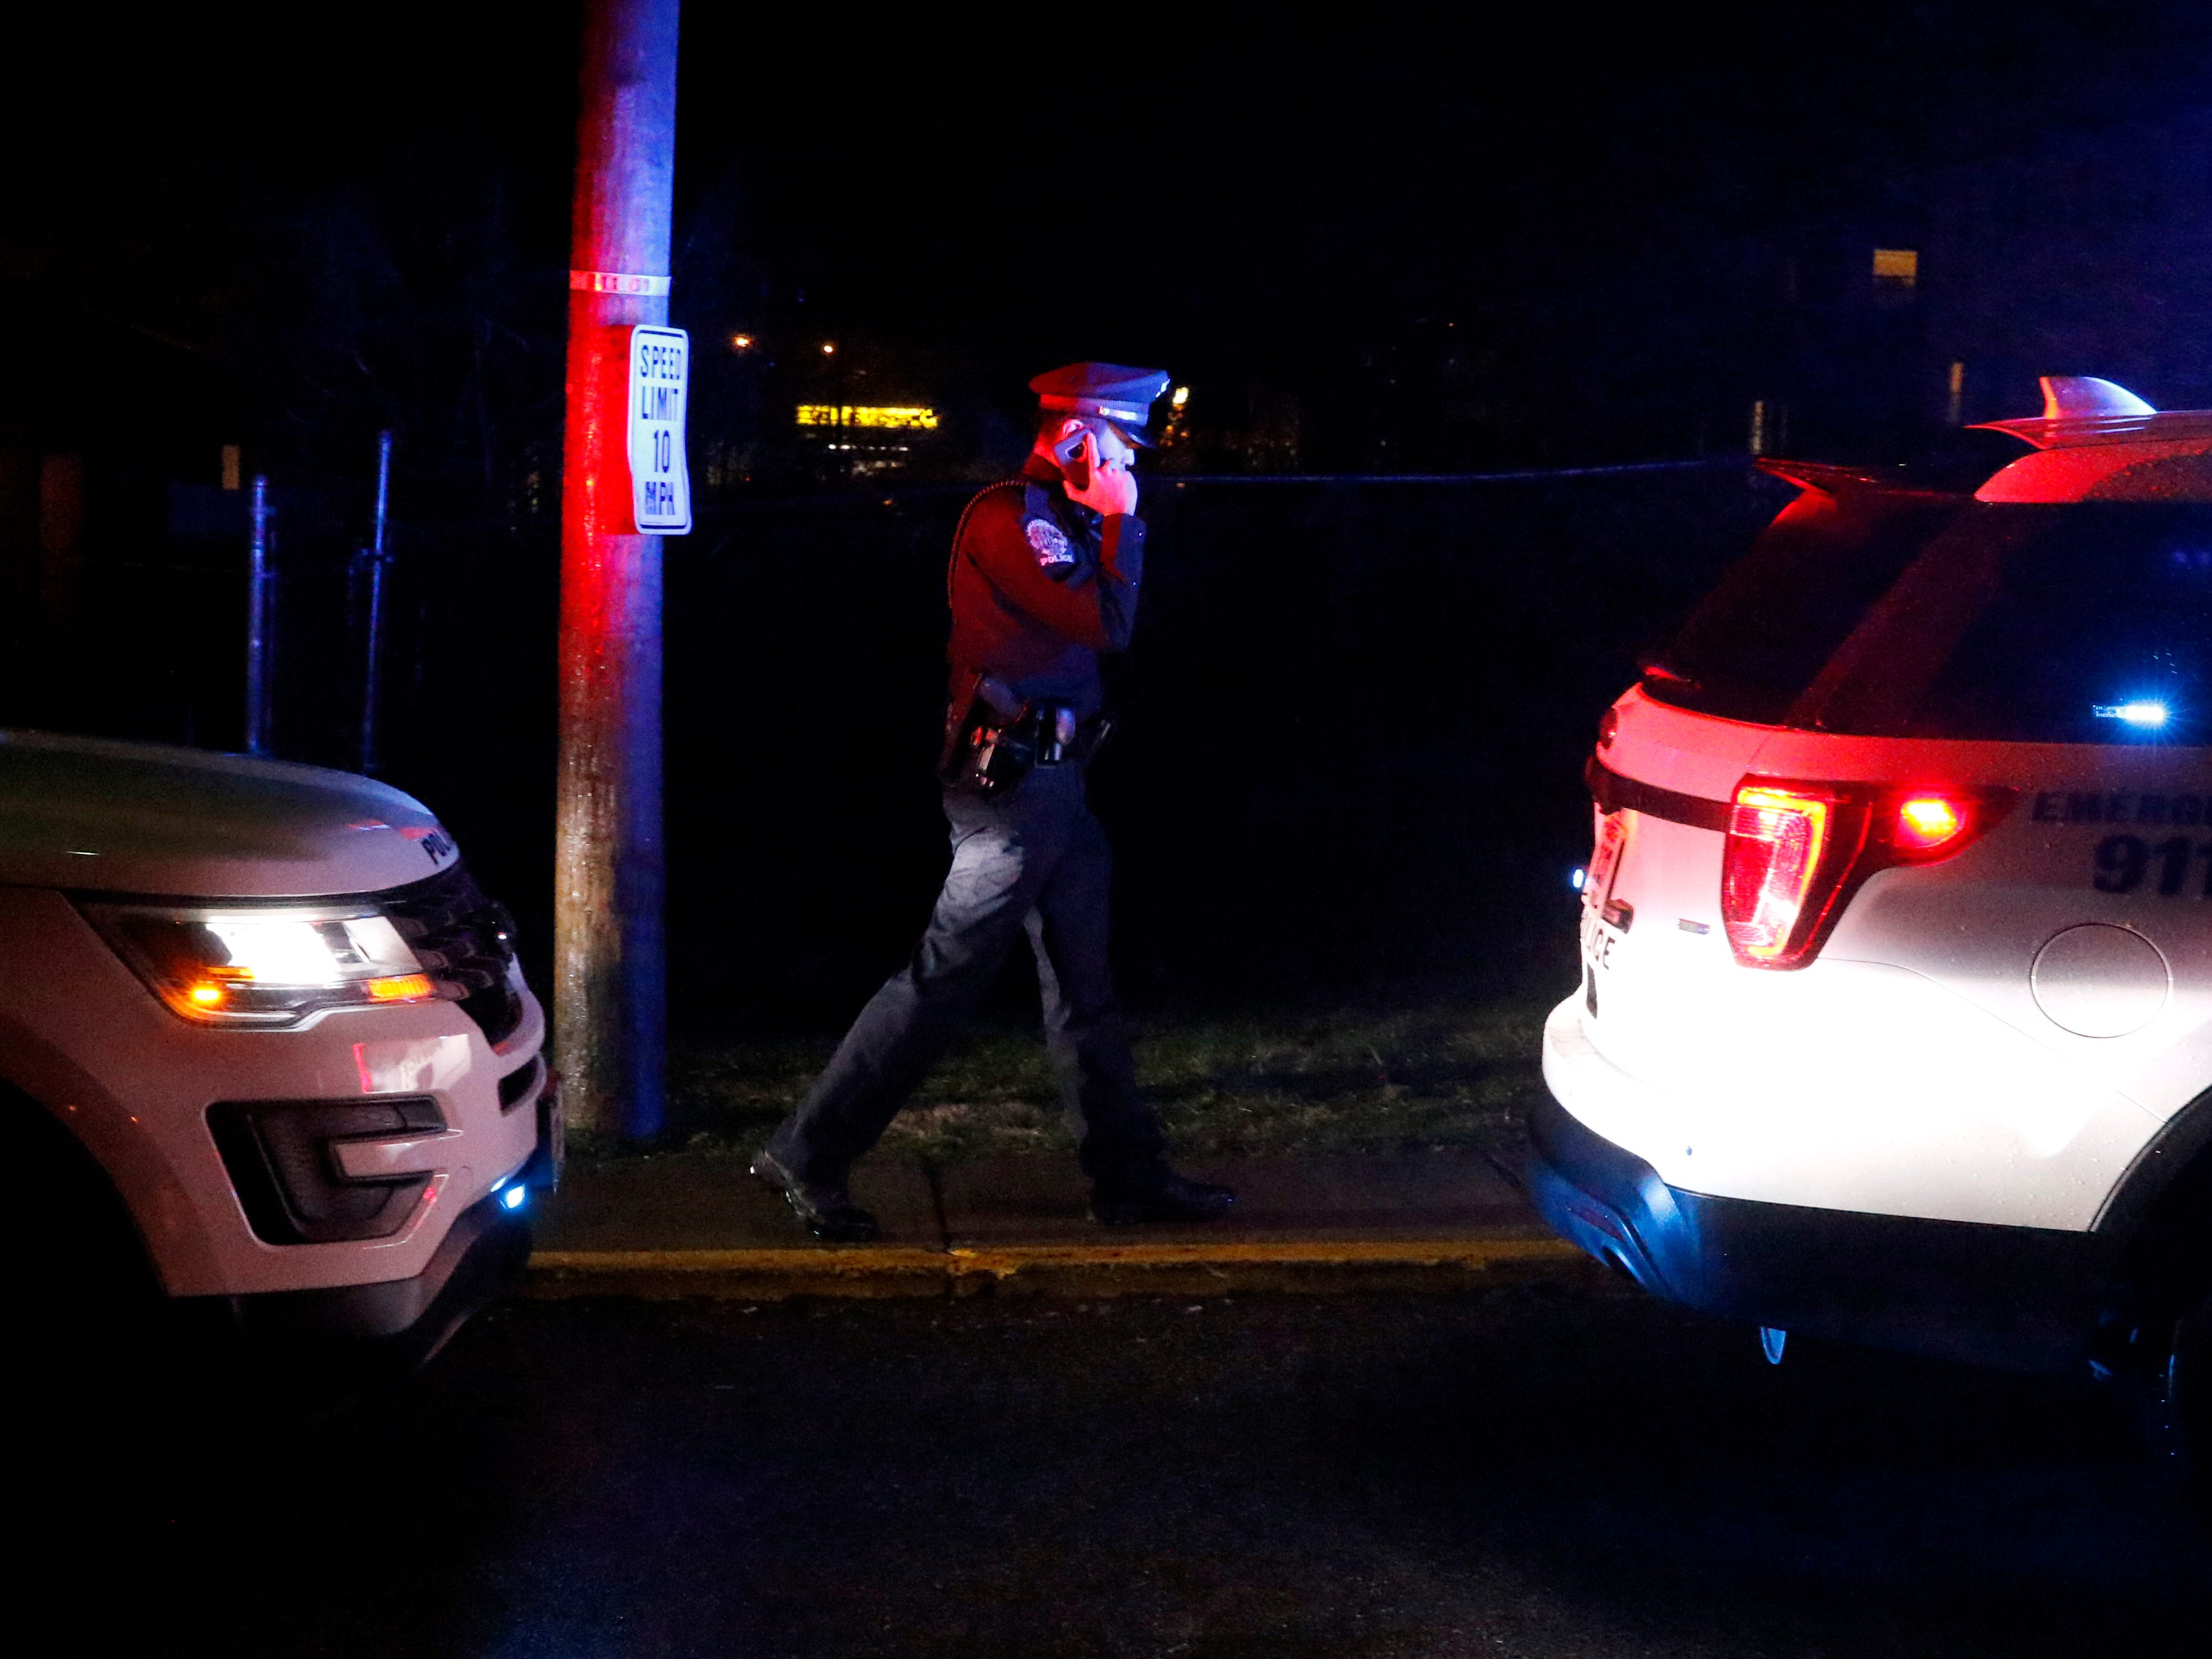 A Lancaster Police Officer walks between cruisers as he speaks on the phone Saturday night, Dec. 15, 2018, in Lancaster. Officers responded to a shooting a Lancaster Club Apartments that sent two people to the hospital.